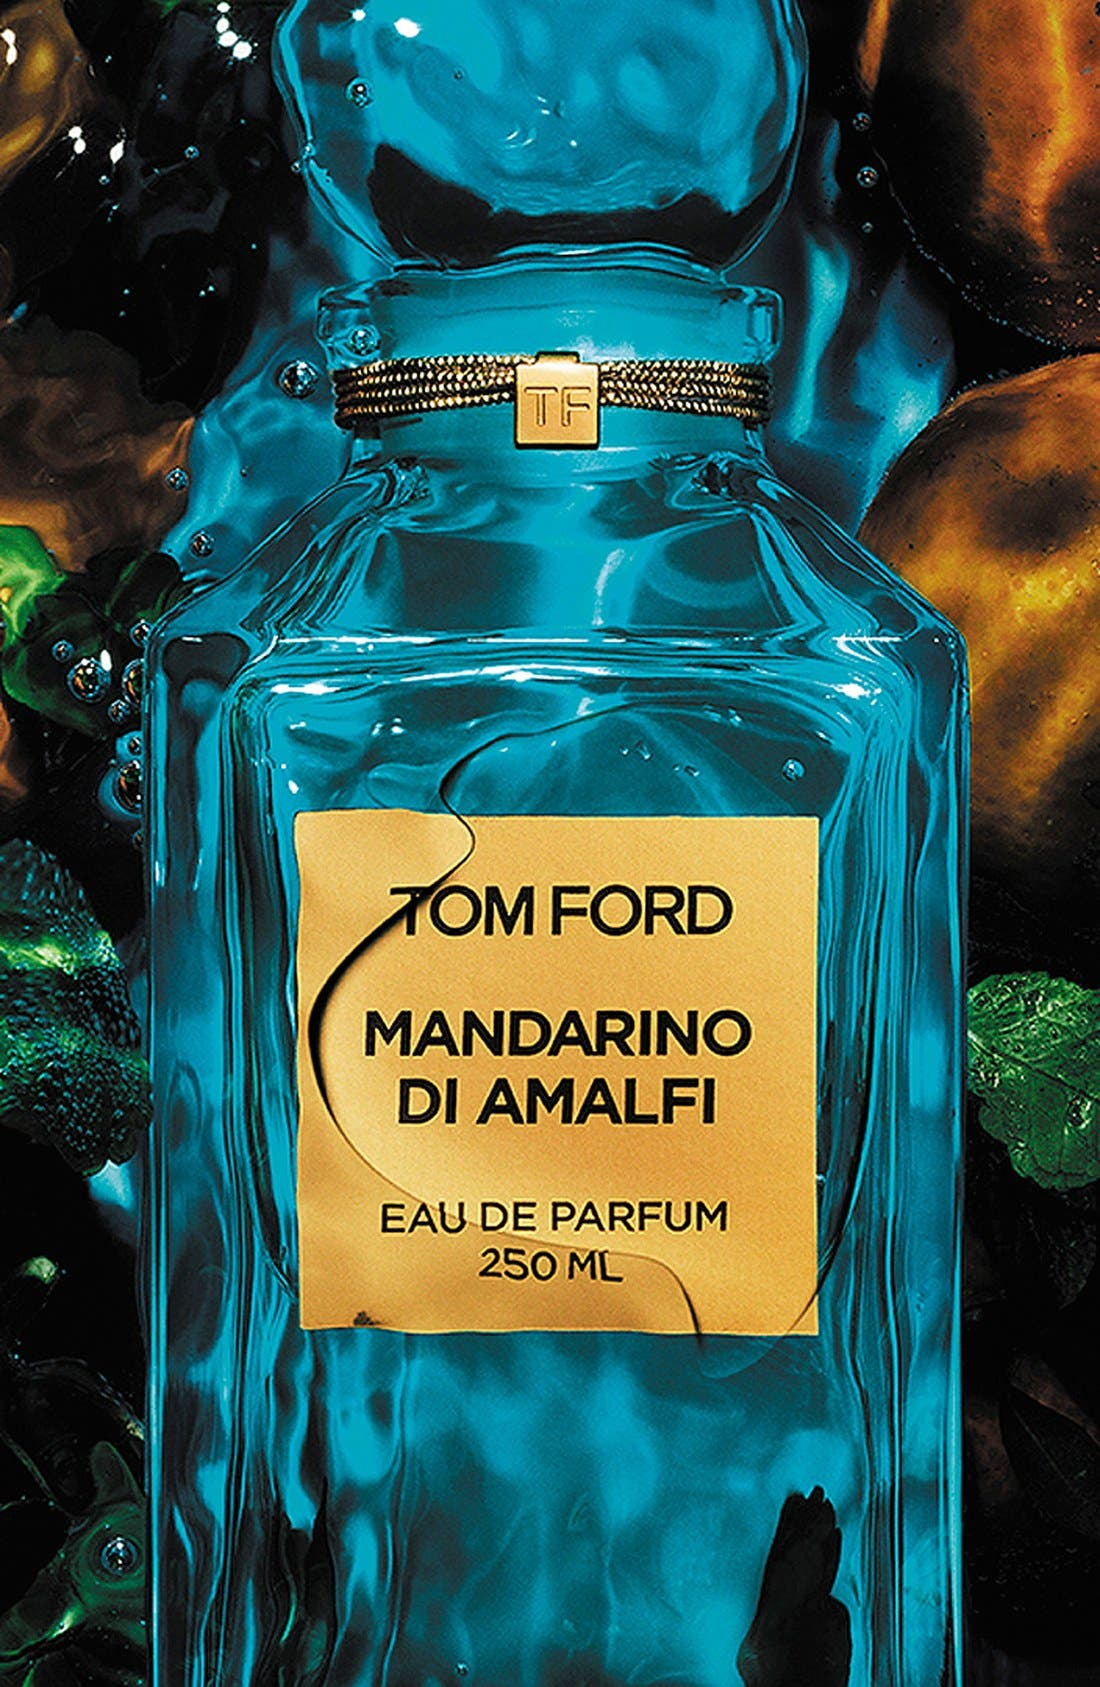 Private Blend Mandarino di Amalfi Eau de Parfum Decanter,                             Alternate thumbnail 4, color,                             NO COLOR